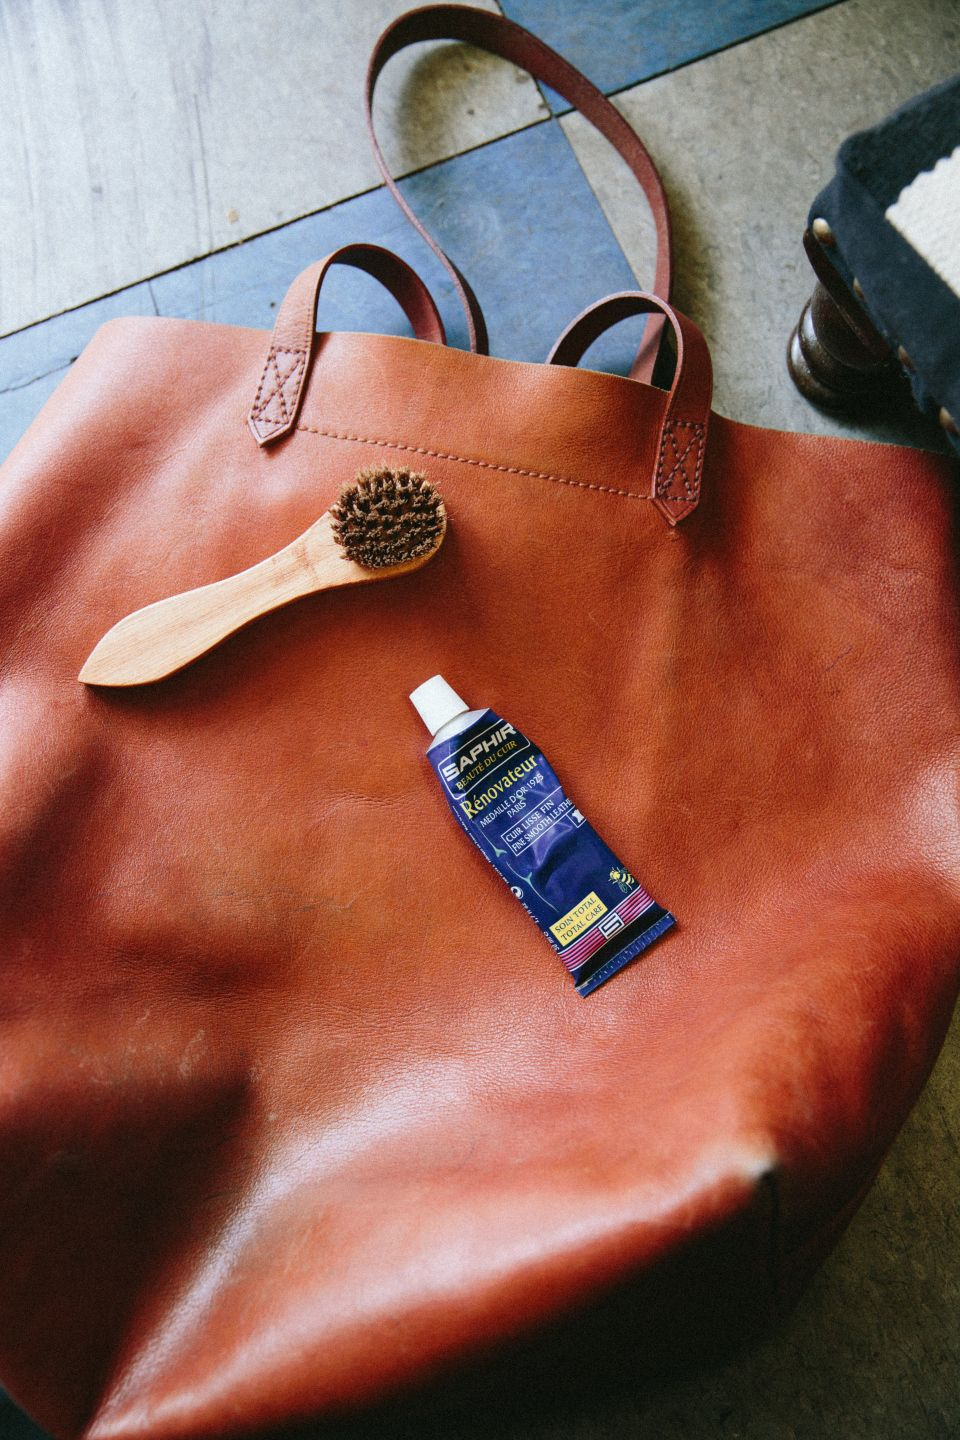 a9a47786a351 How to Care for a Leather Bag   5 Tips